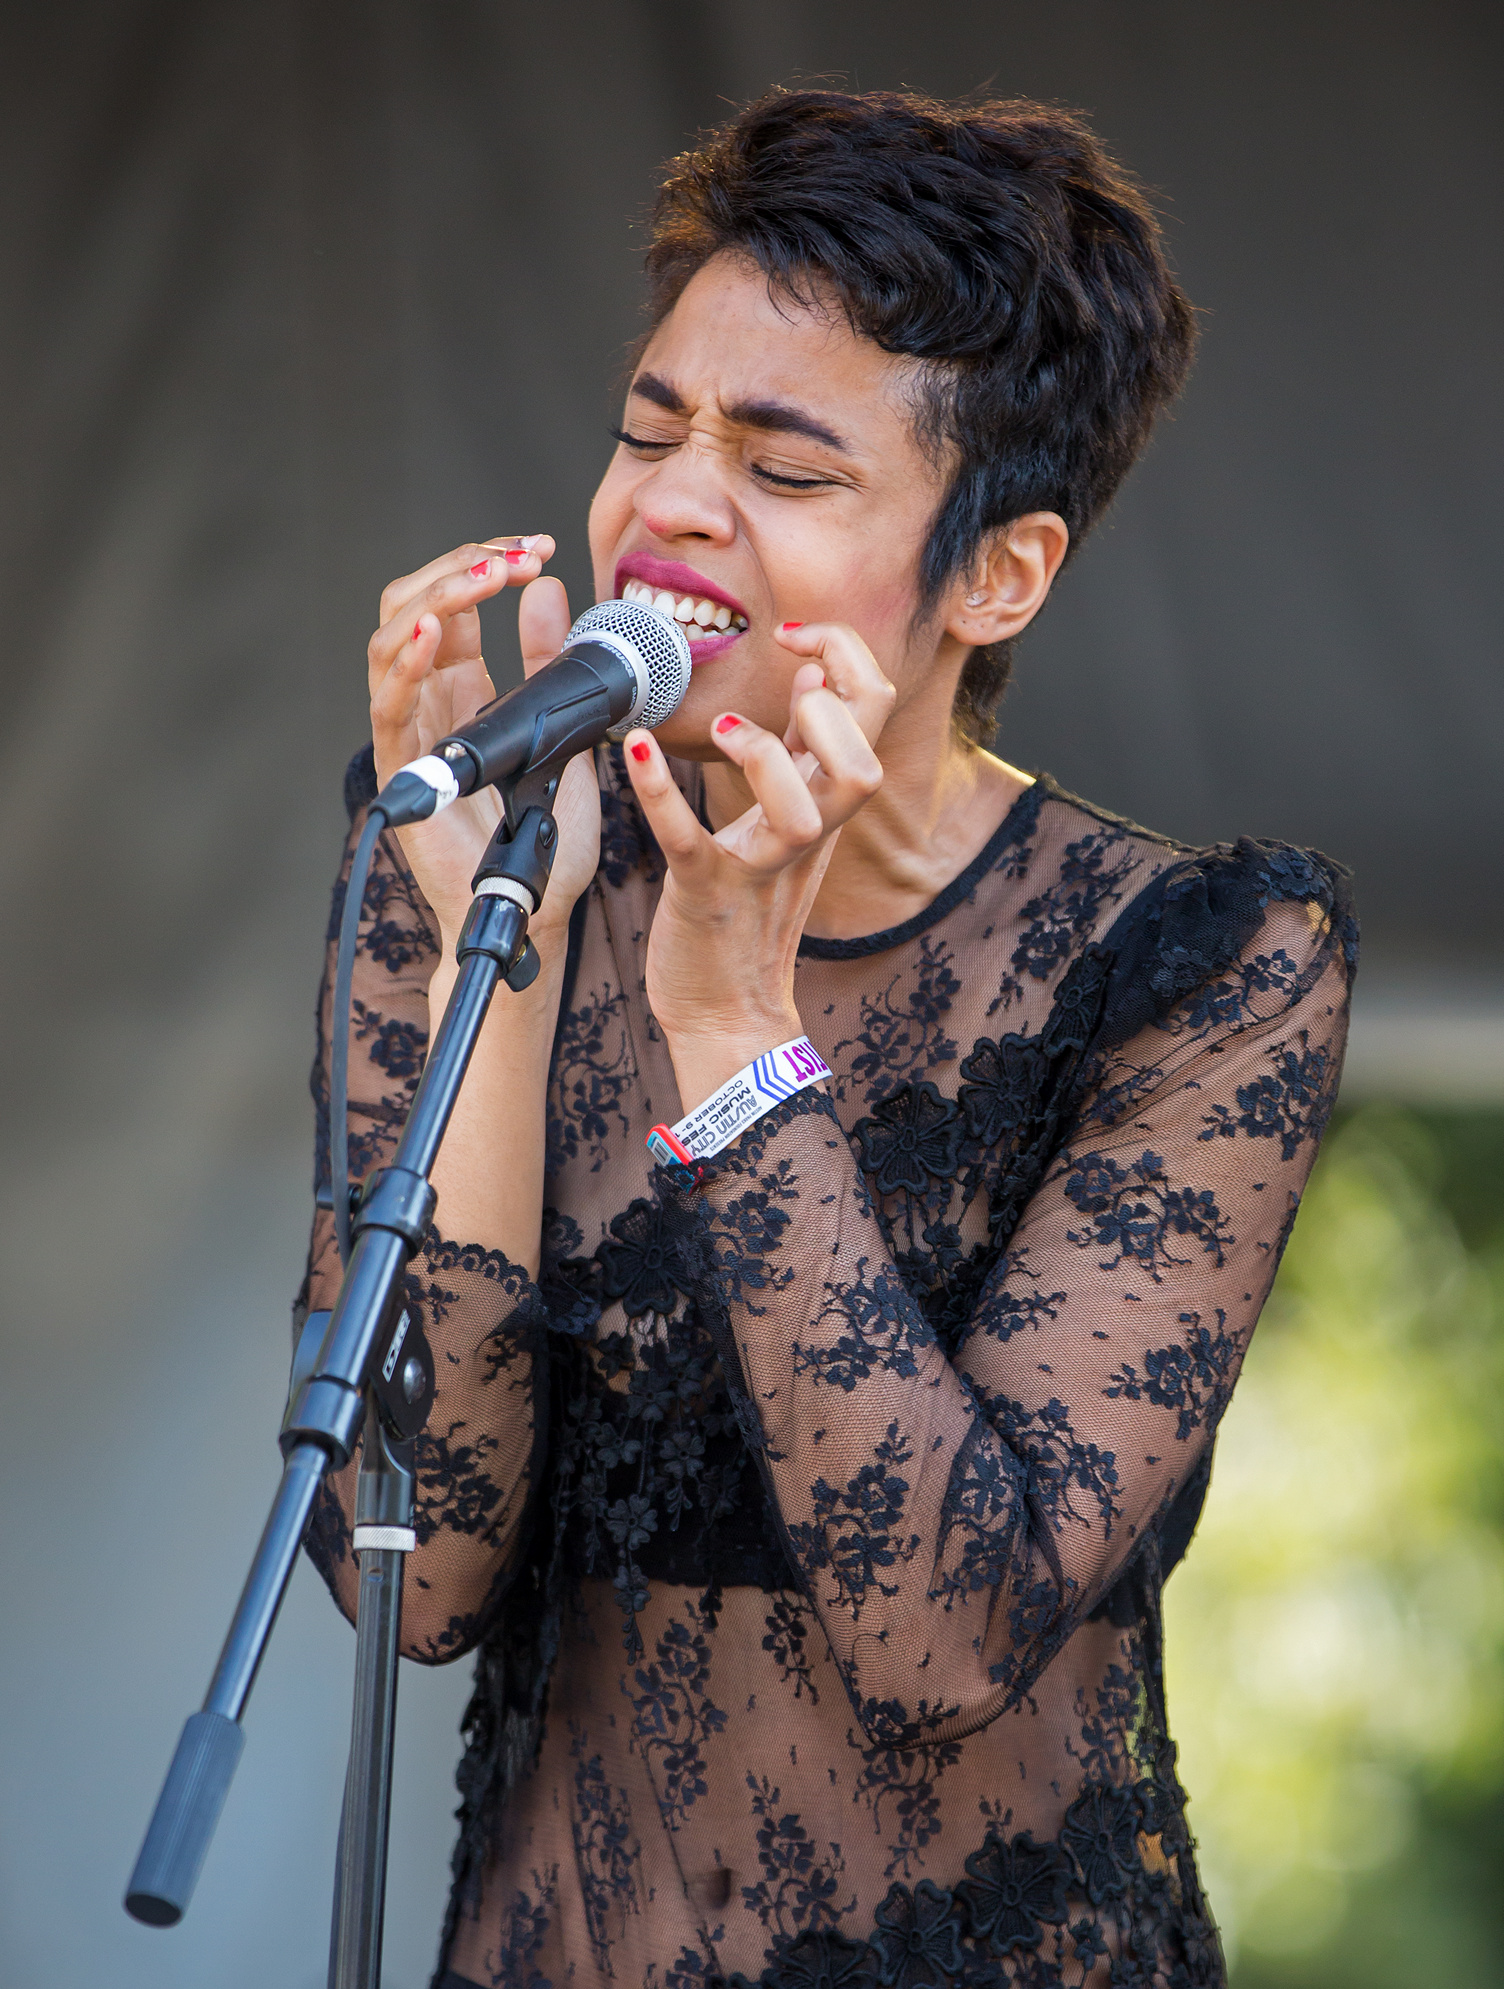 Adia Victoria performing at [[Austin City Limits Music Festival]] in 2015